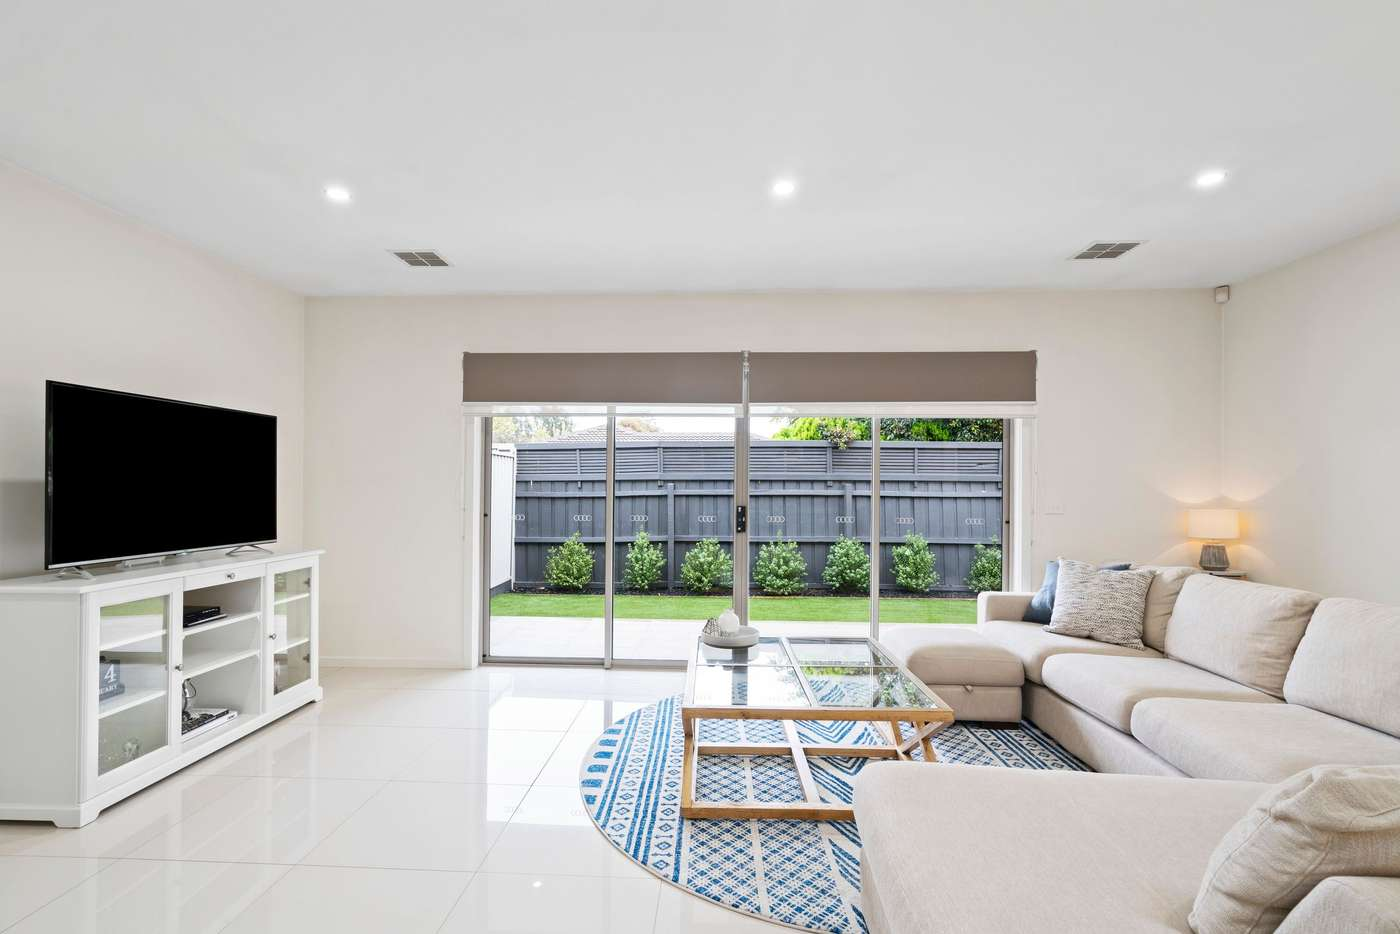 Fifth view of Homely house listing, 9A Henry Street, Keilor East VIC 3033